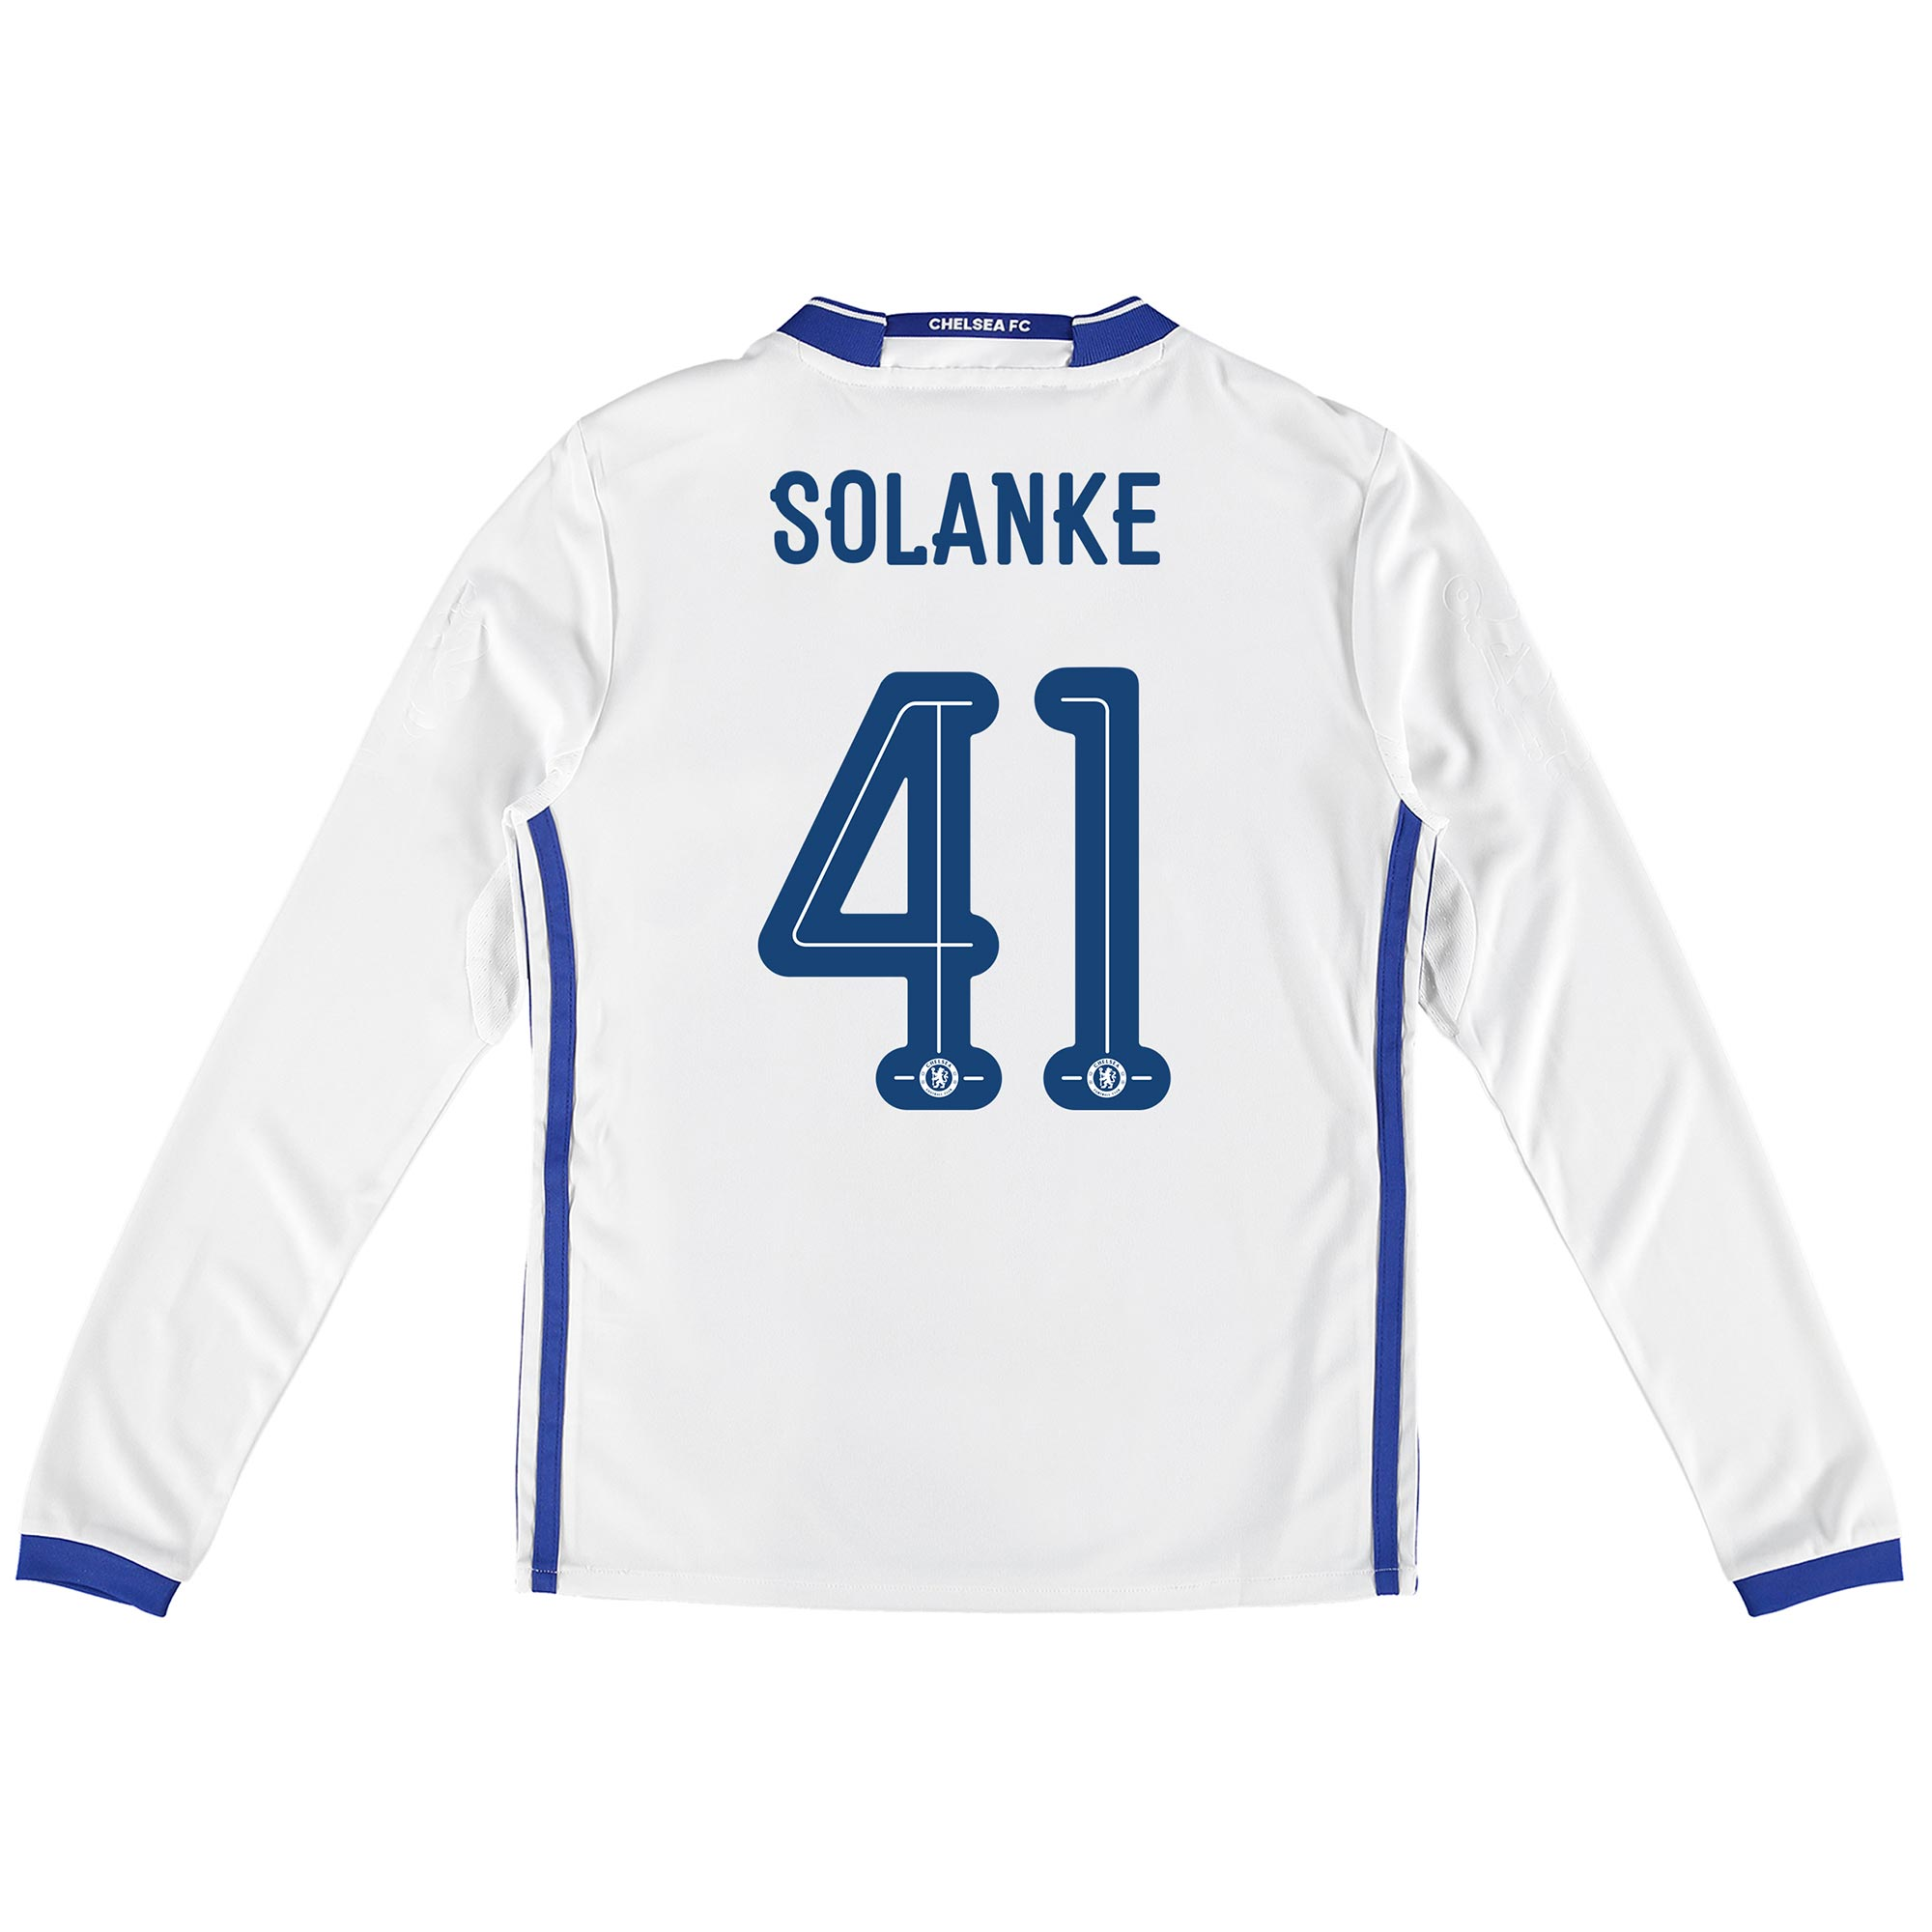 Chelsea Linear Third Shirt 16-17 - Kids - Long Sleeve with Solanke 41